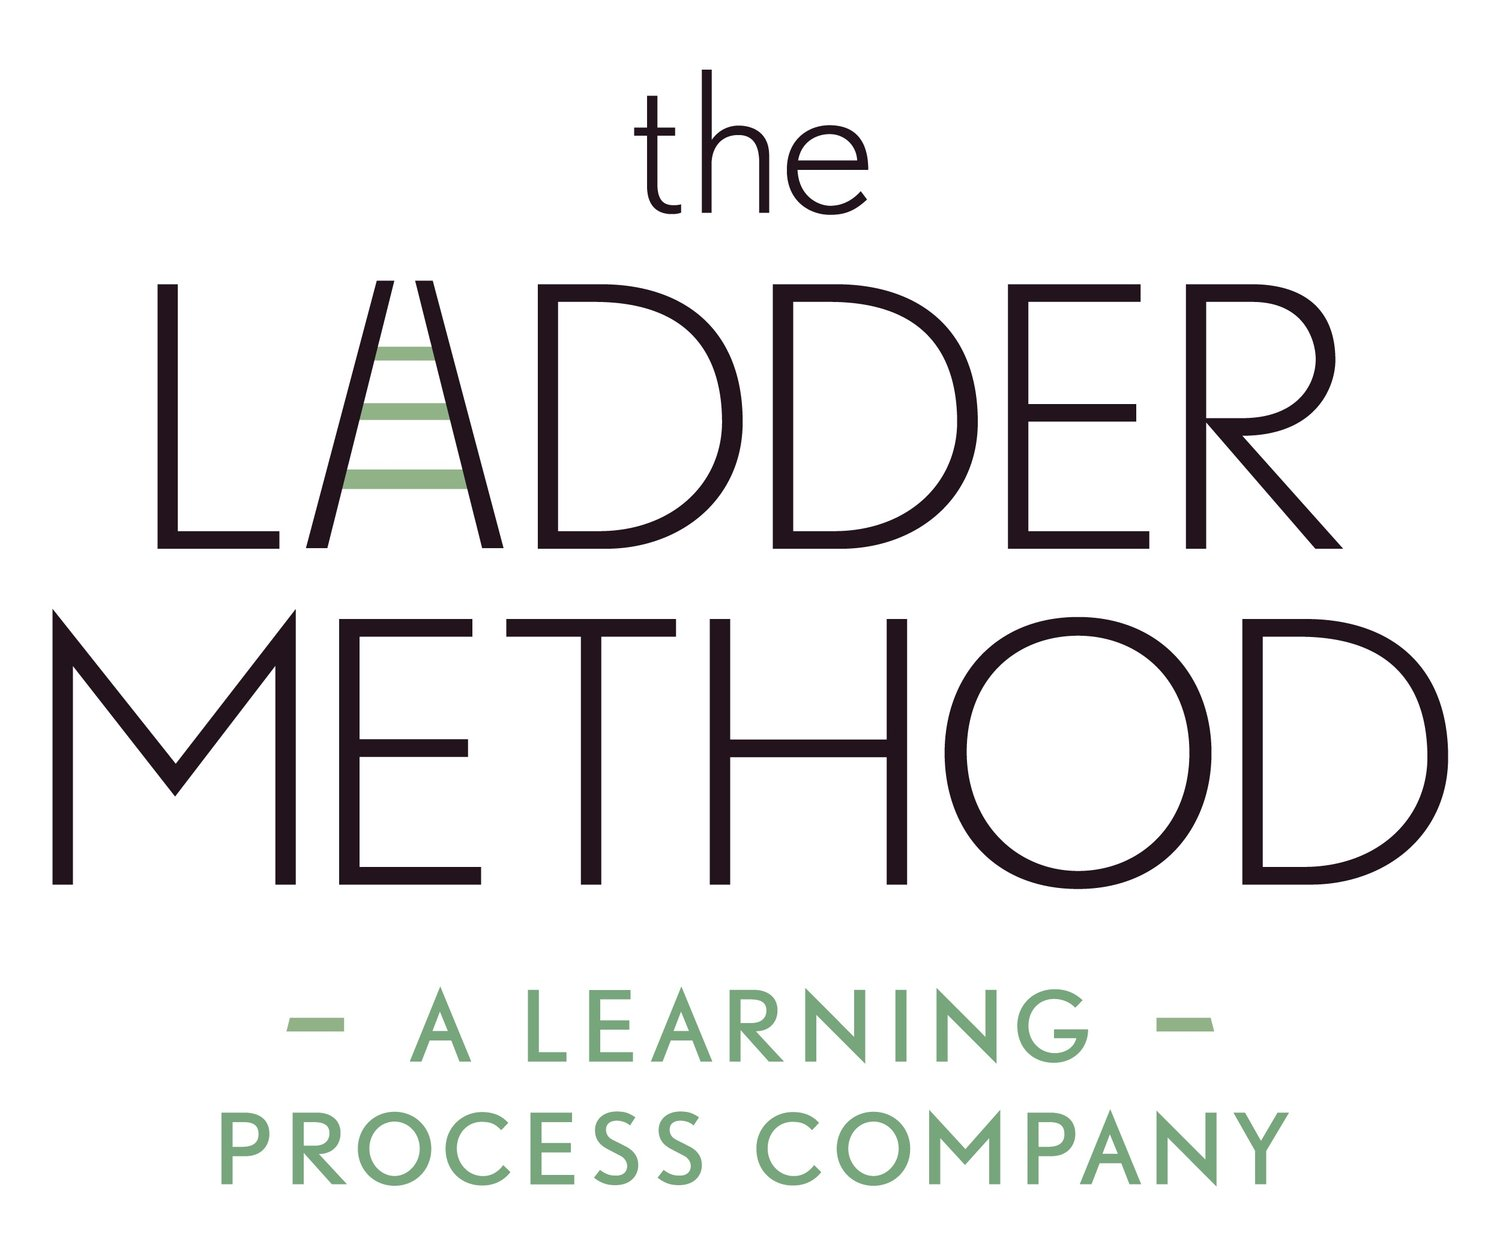 The Ladder Method